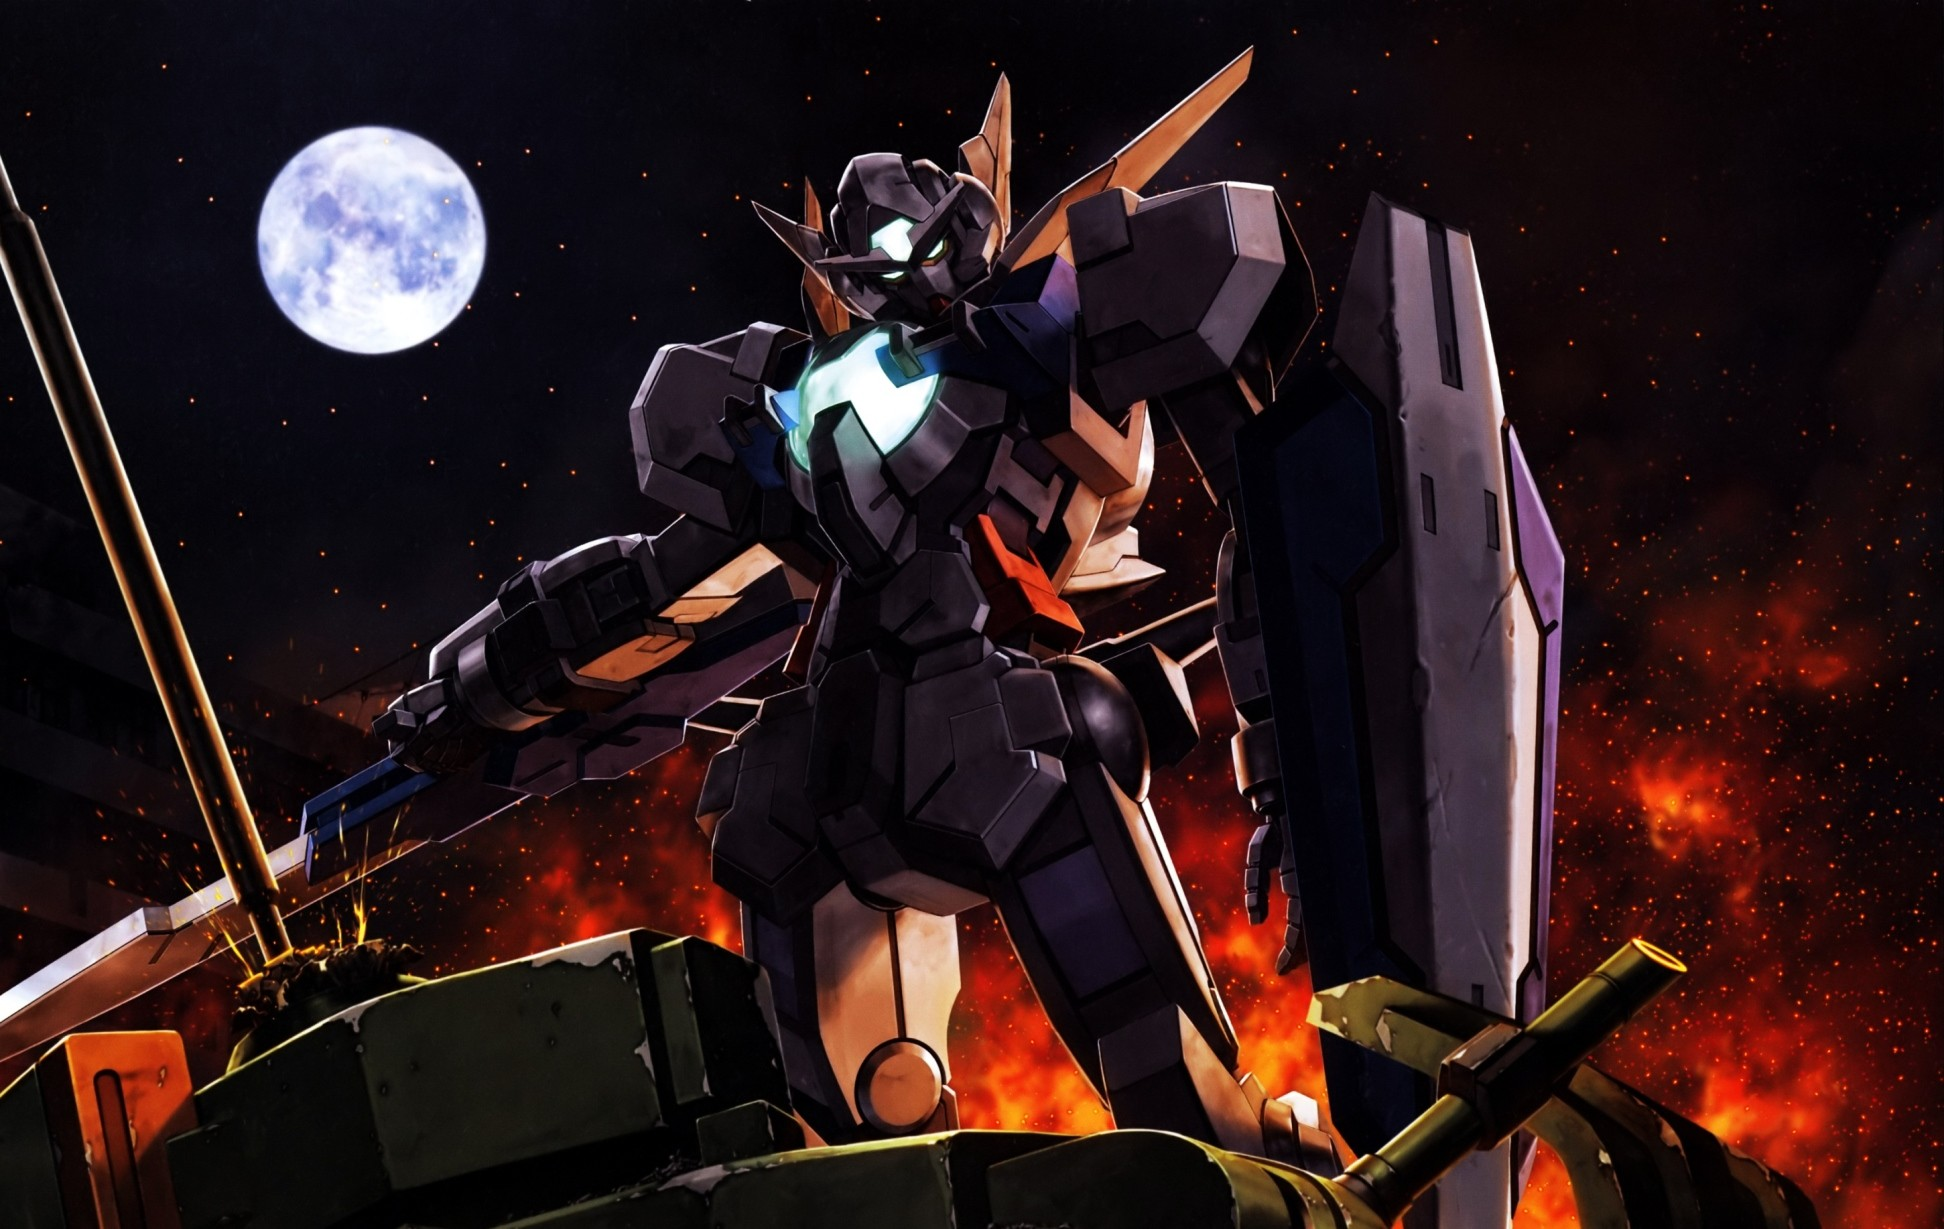 Gundam Background Wallpapers WIN10 THEMES 1944x1229